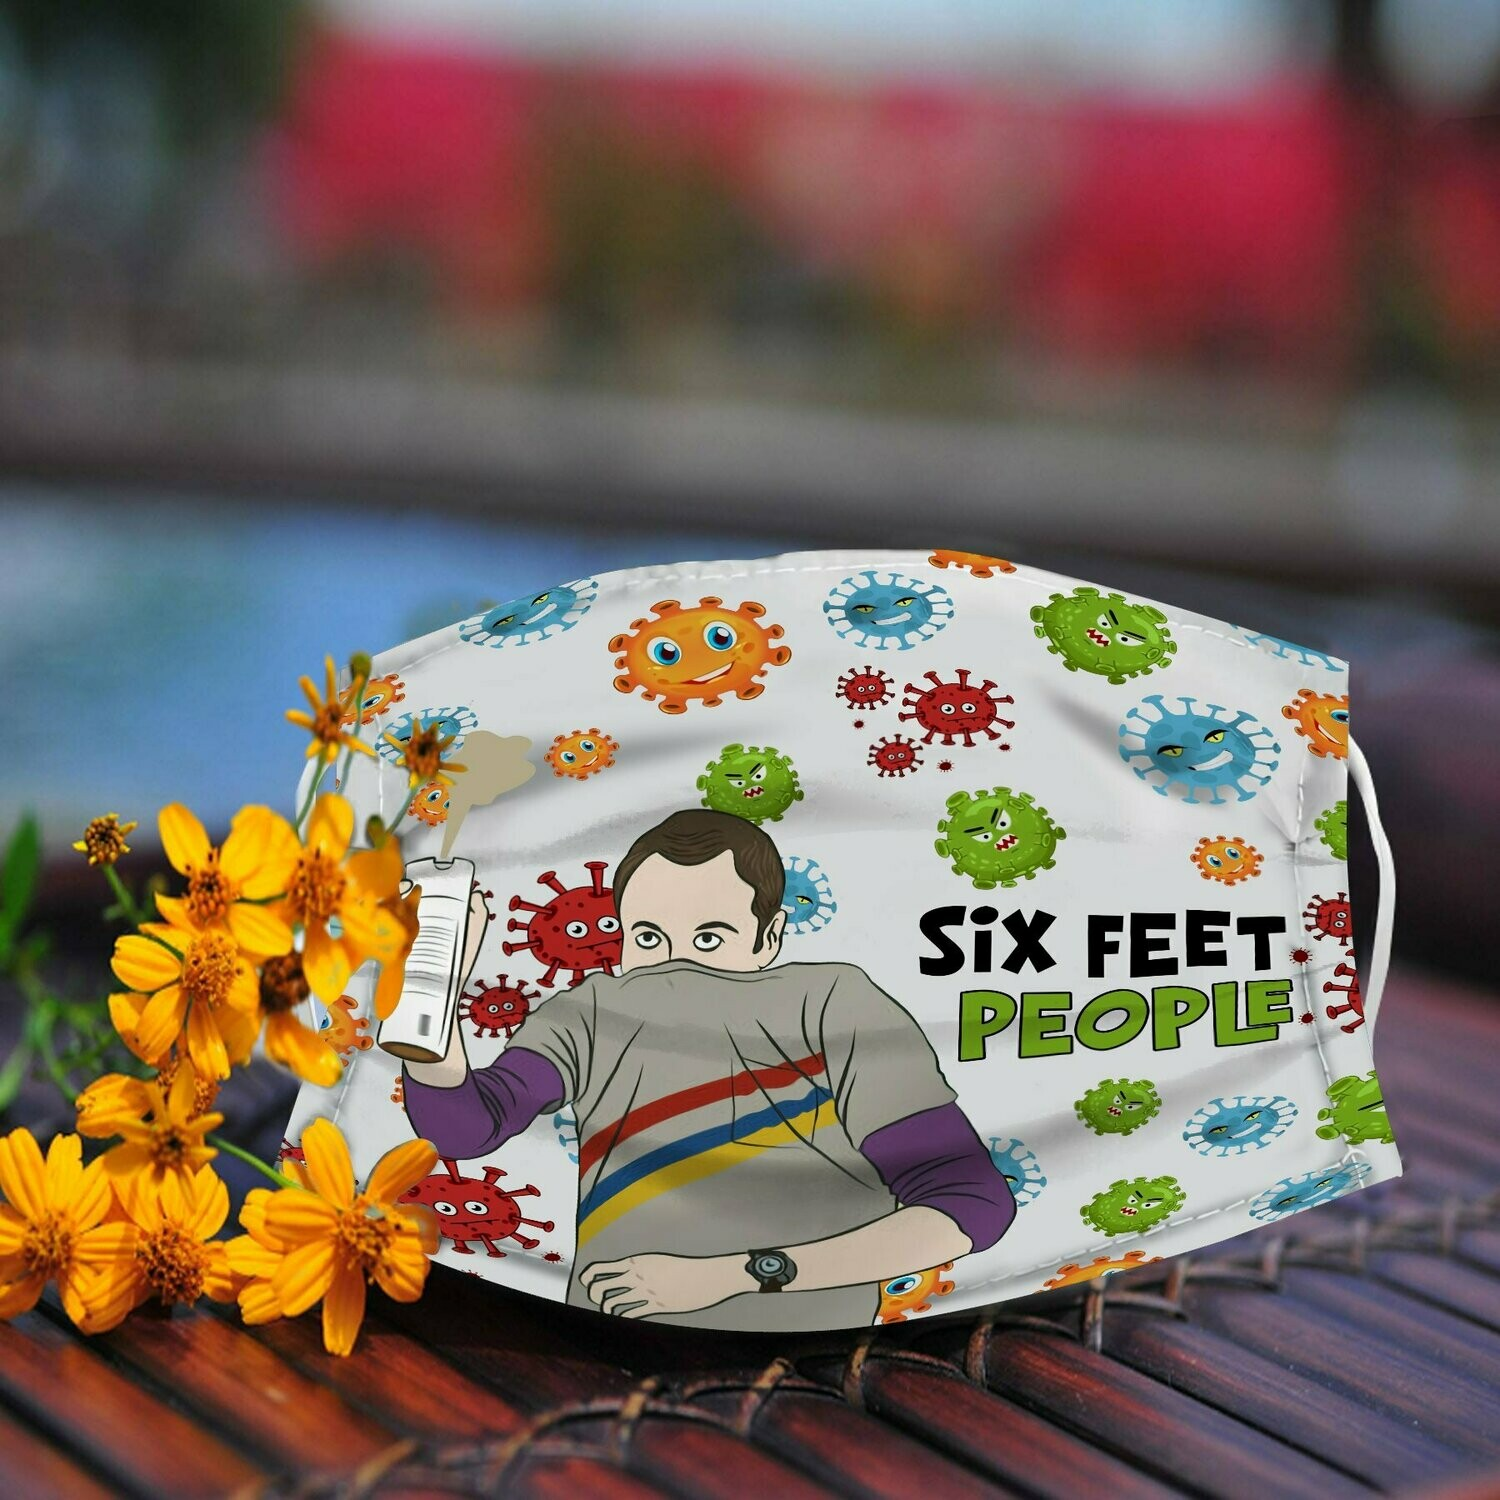 the big bang Sheldon Cooper Six Feet People Face Mask